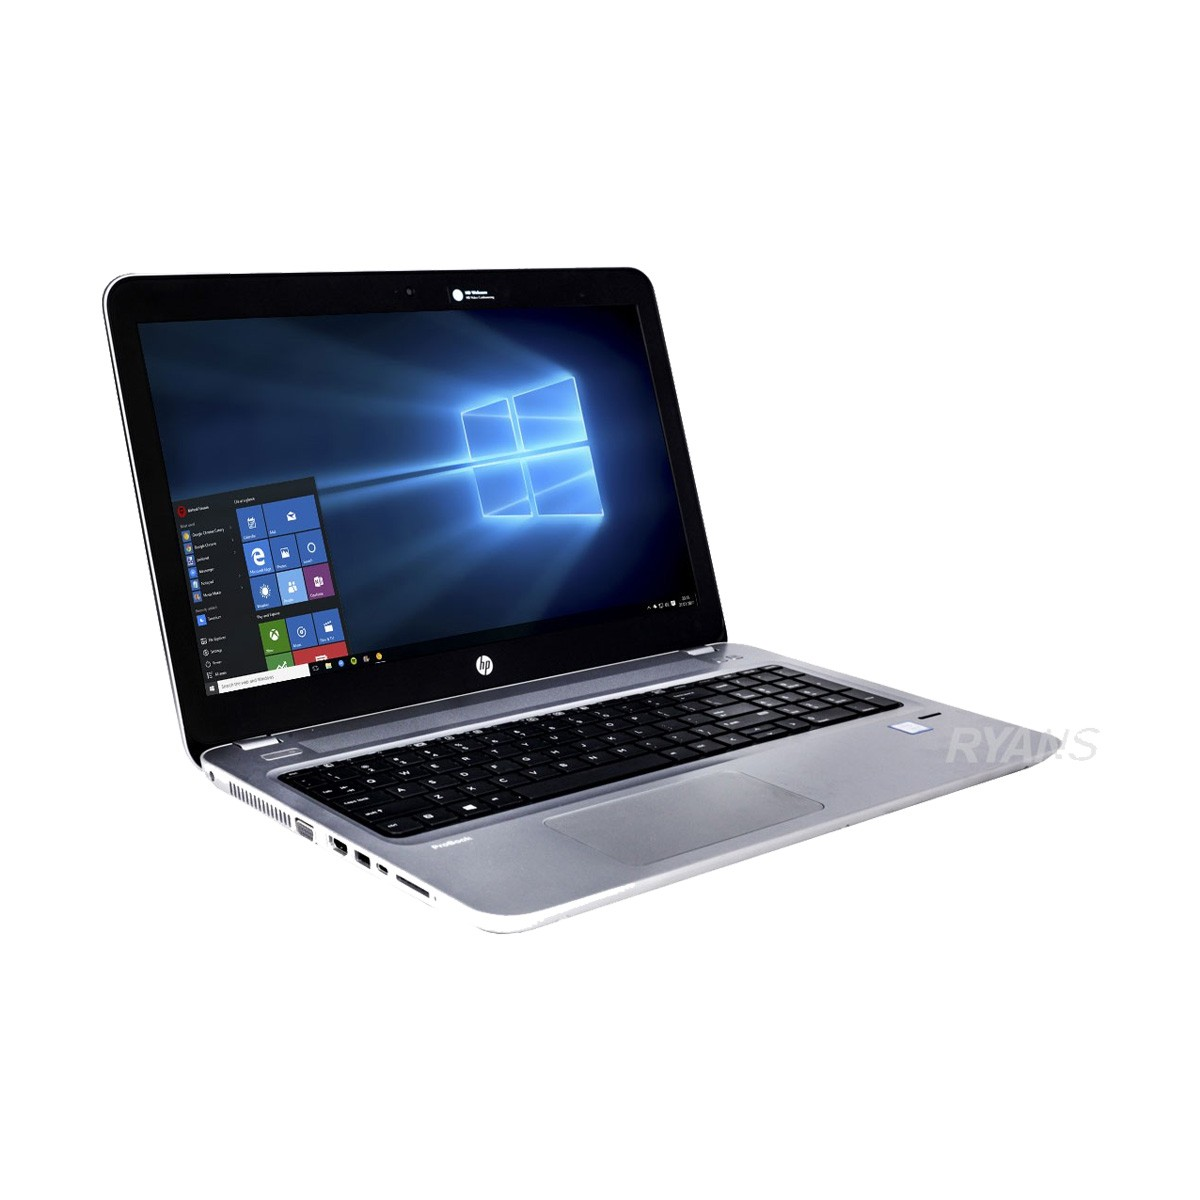 HP ProBook 450 G4 Core i5 Laptop 8GB RAM 1TB HDD